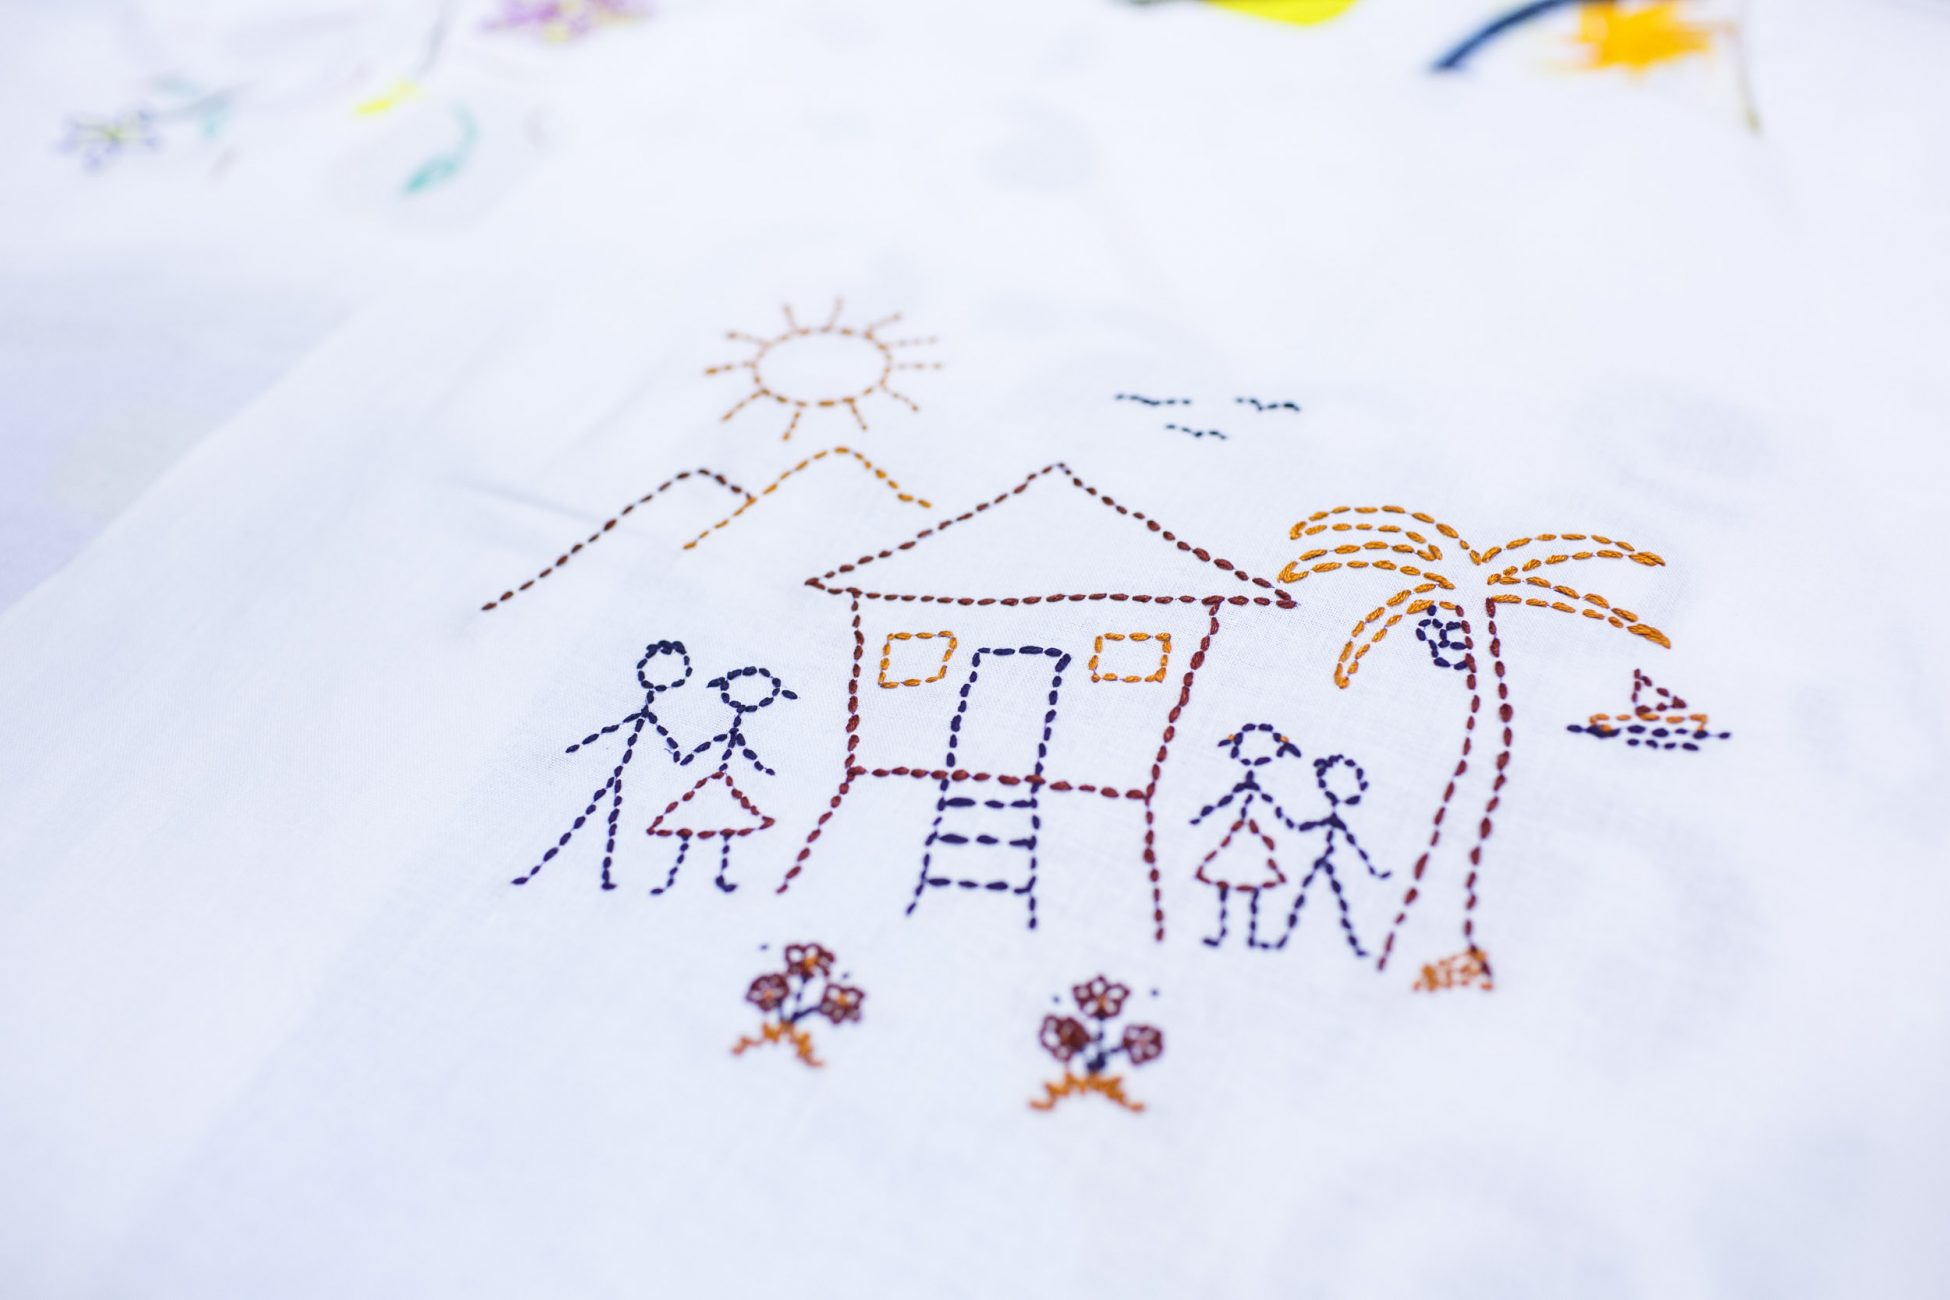 Photo of a piece of white fabric with an embroidery depicting four stick figures, a house raised up on stilts, a palm tree, mountains, birds, flowers and the sun.